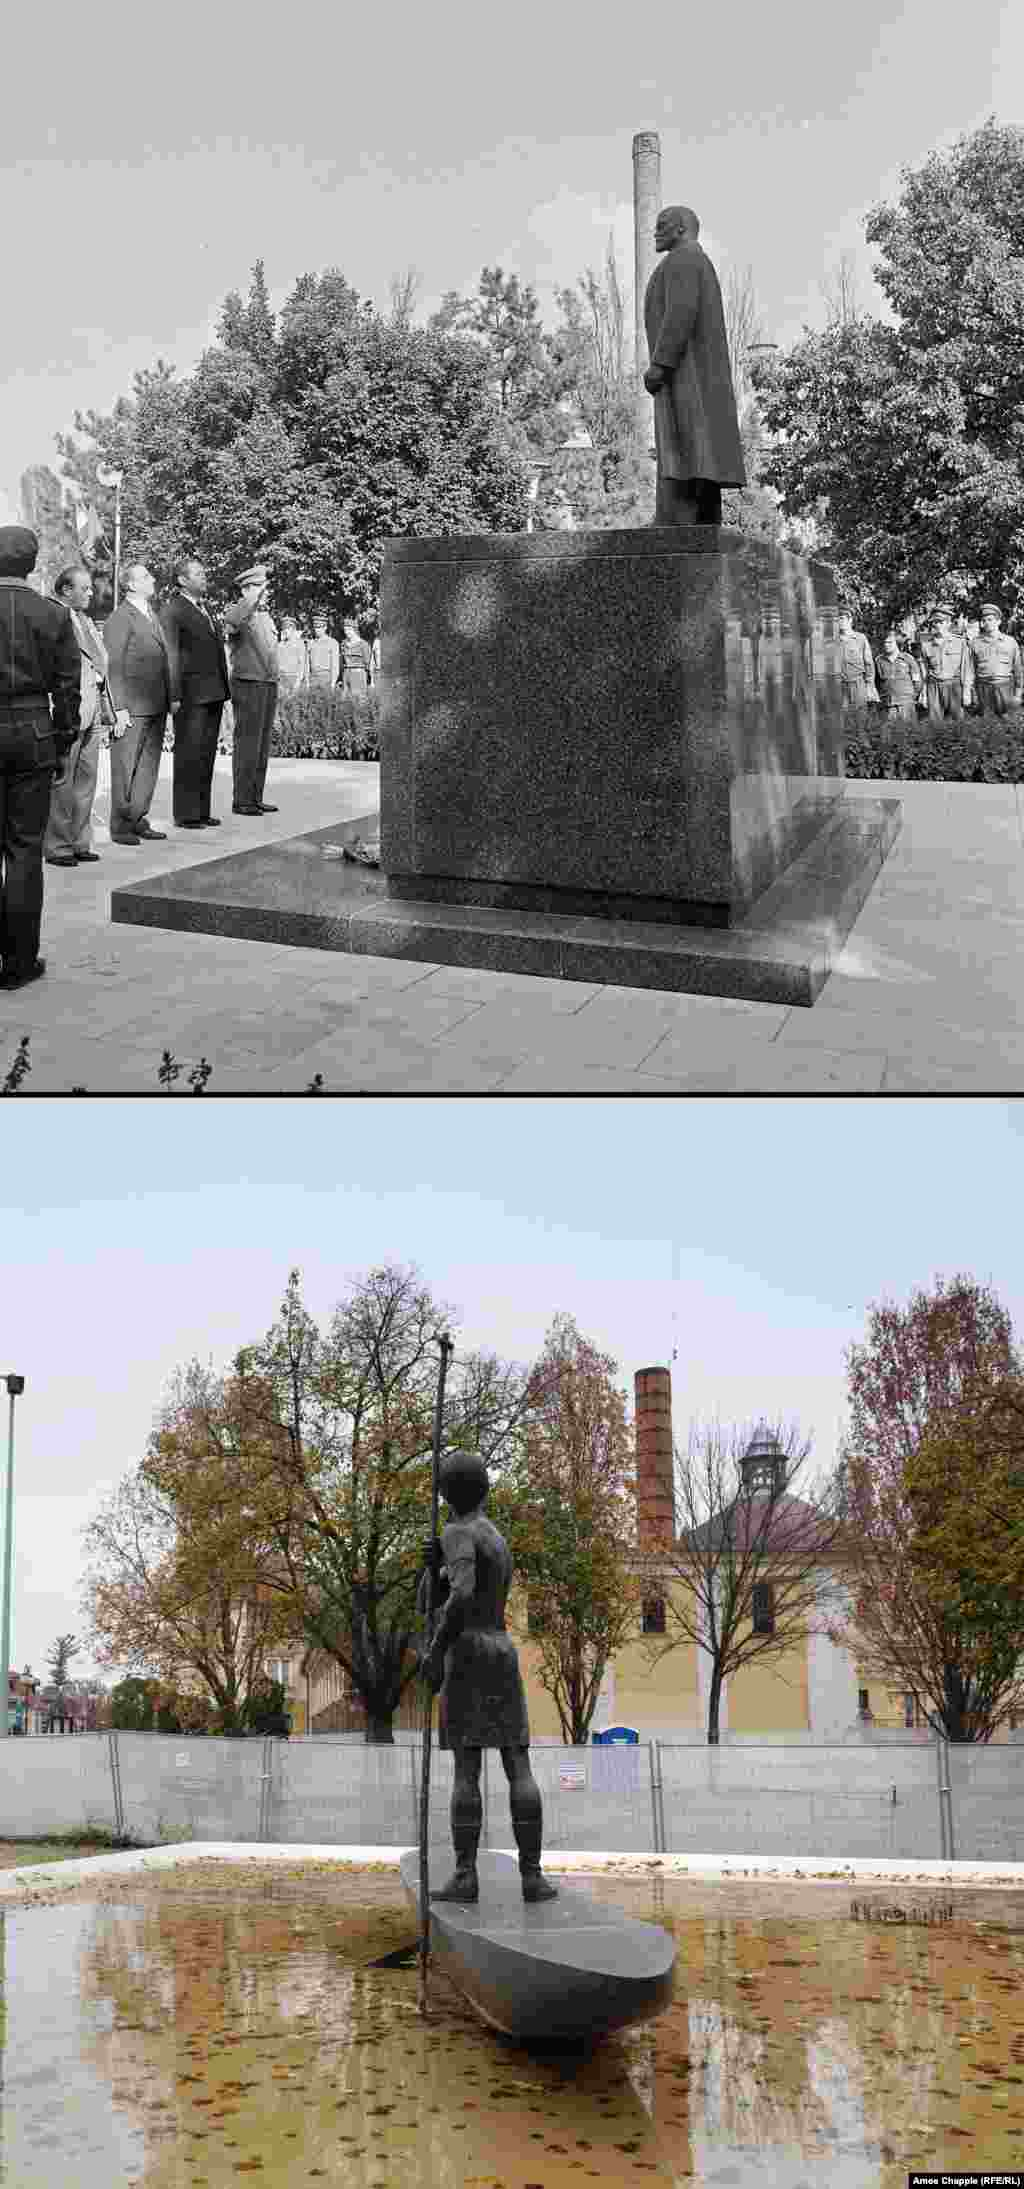 Szolnok 1977-2019 A Lenin monument erected in the 1960s in the eastern town of Szolnok (top). The Soviet leader was replaced with an installation representing a scene from the riverside town's early history. In 2013, the Lenin was photographed lying on his back in an unknown location. The chimney in the background was shortened sometime since the 1970s. 1977 photo: Fortepan/MHSZ